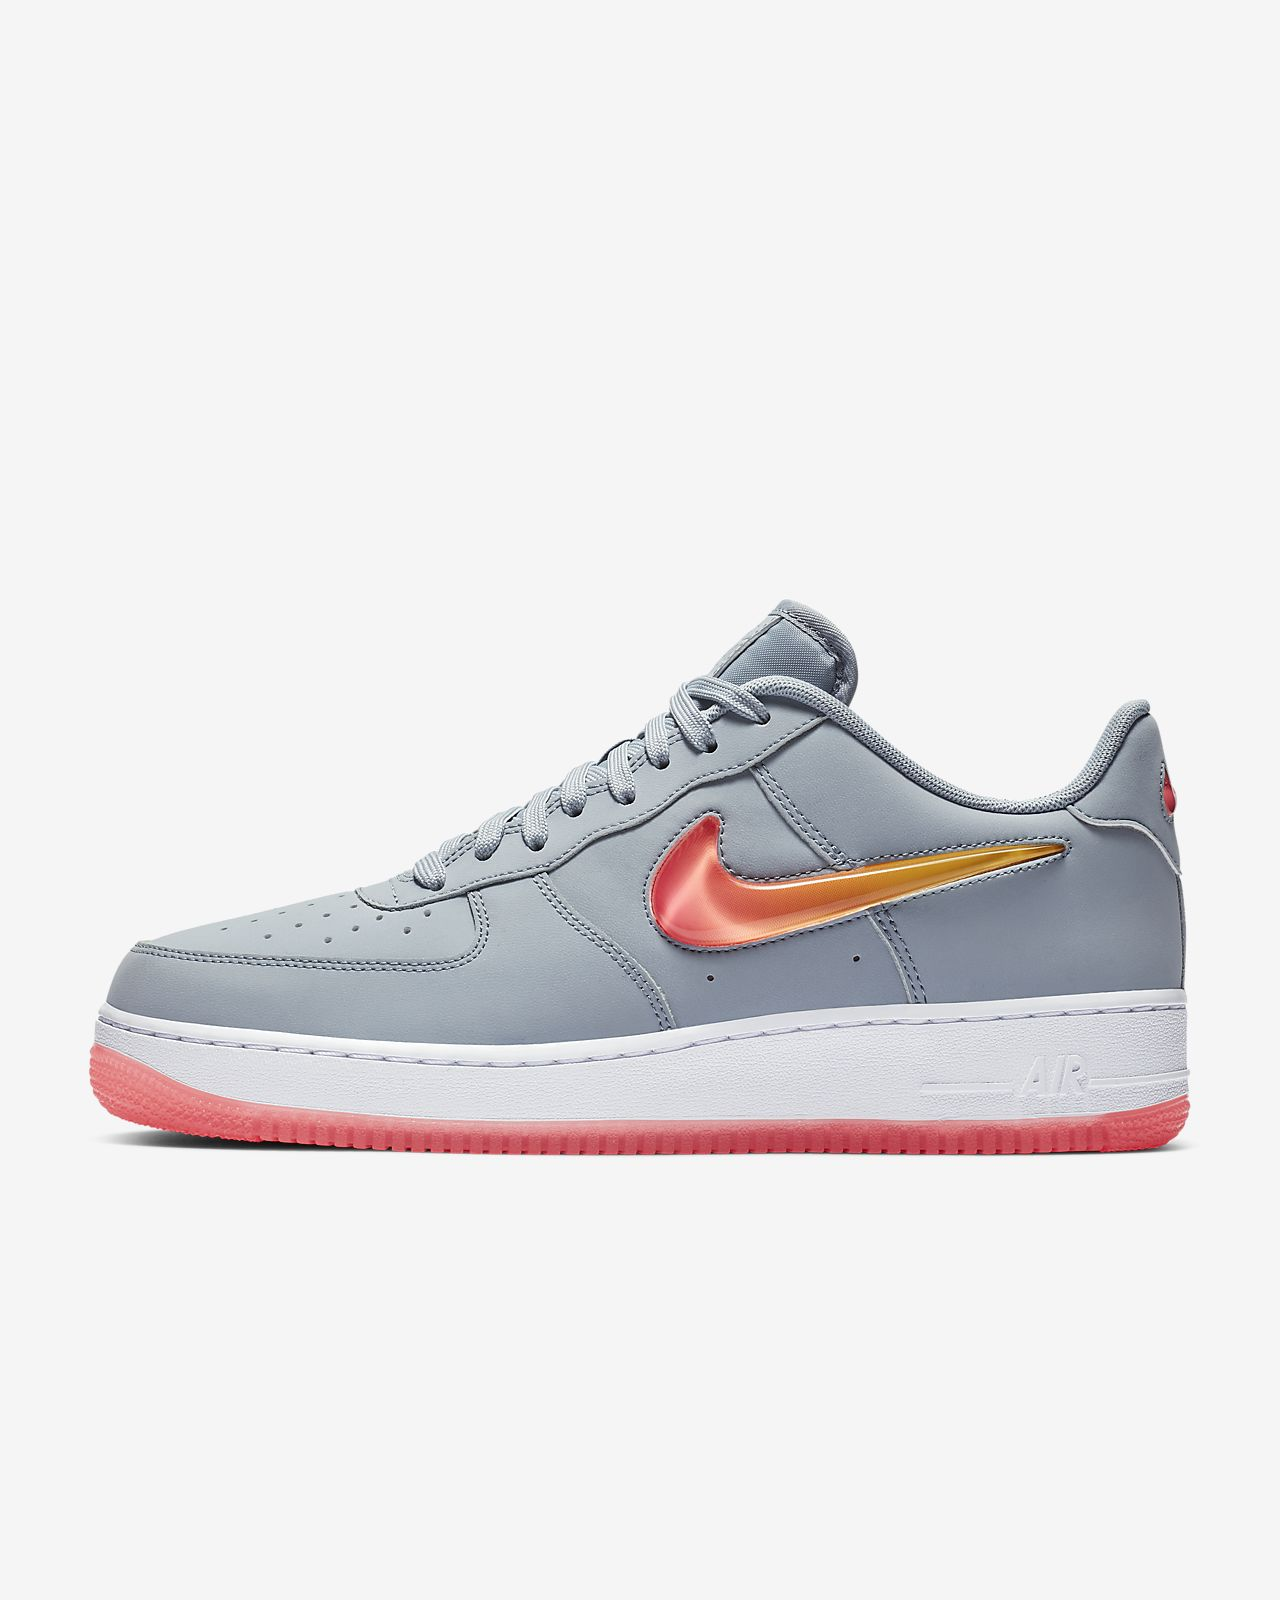 880cef643bc11 Nike Air Force 1  07 Premium 2 Men s Shoe. Nike.com